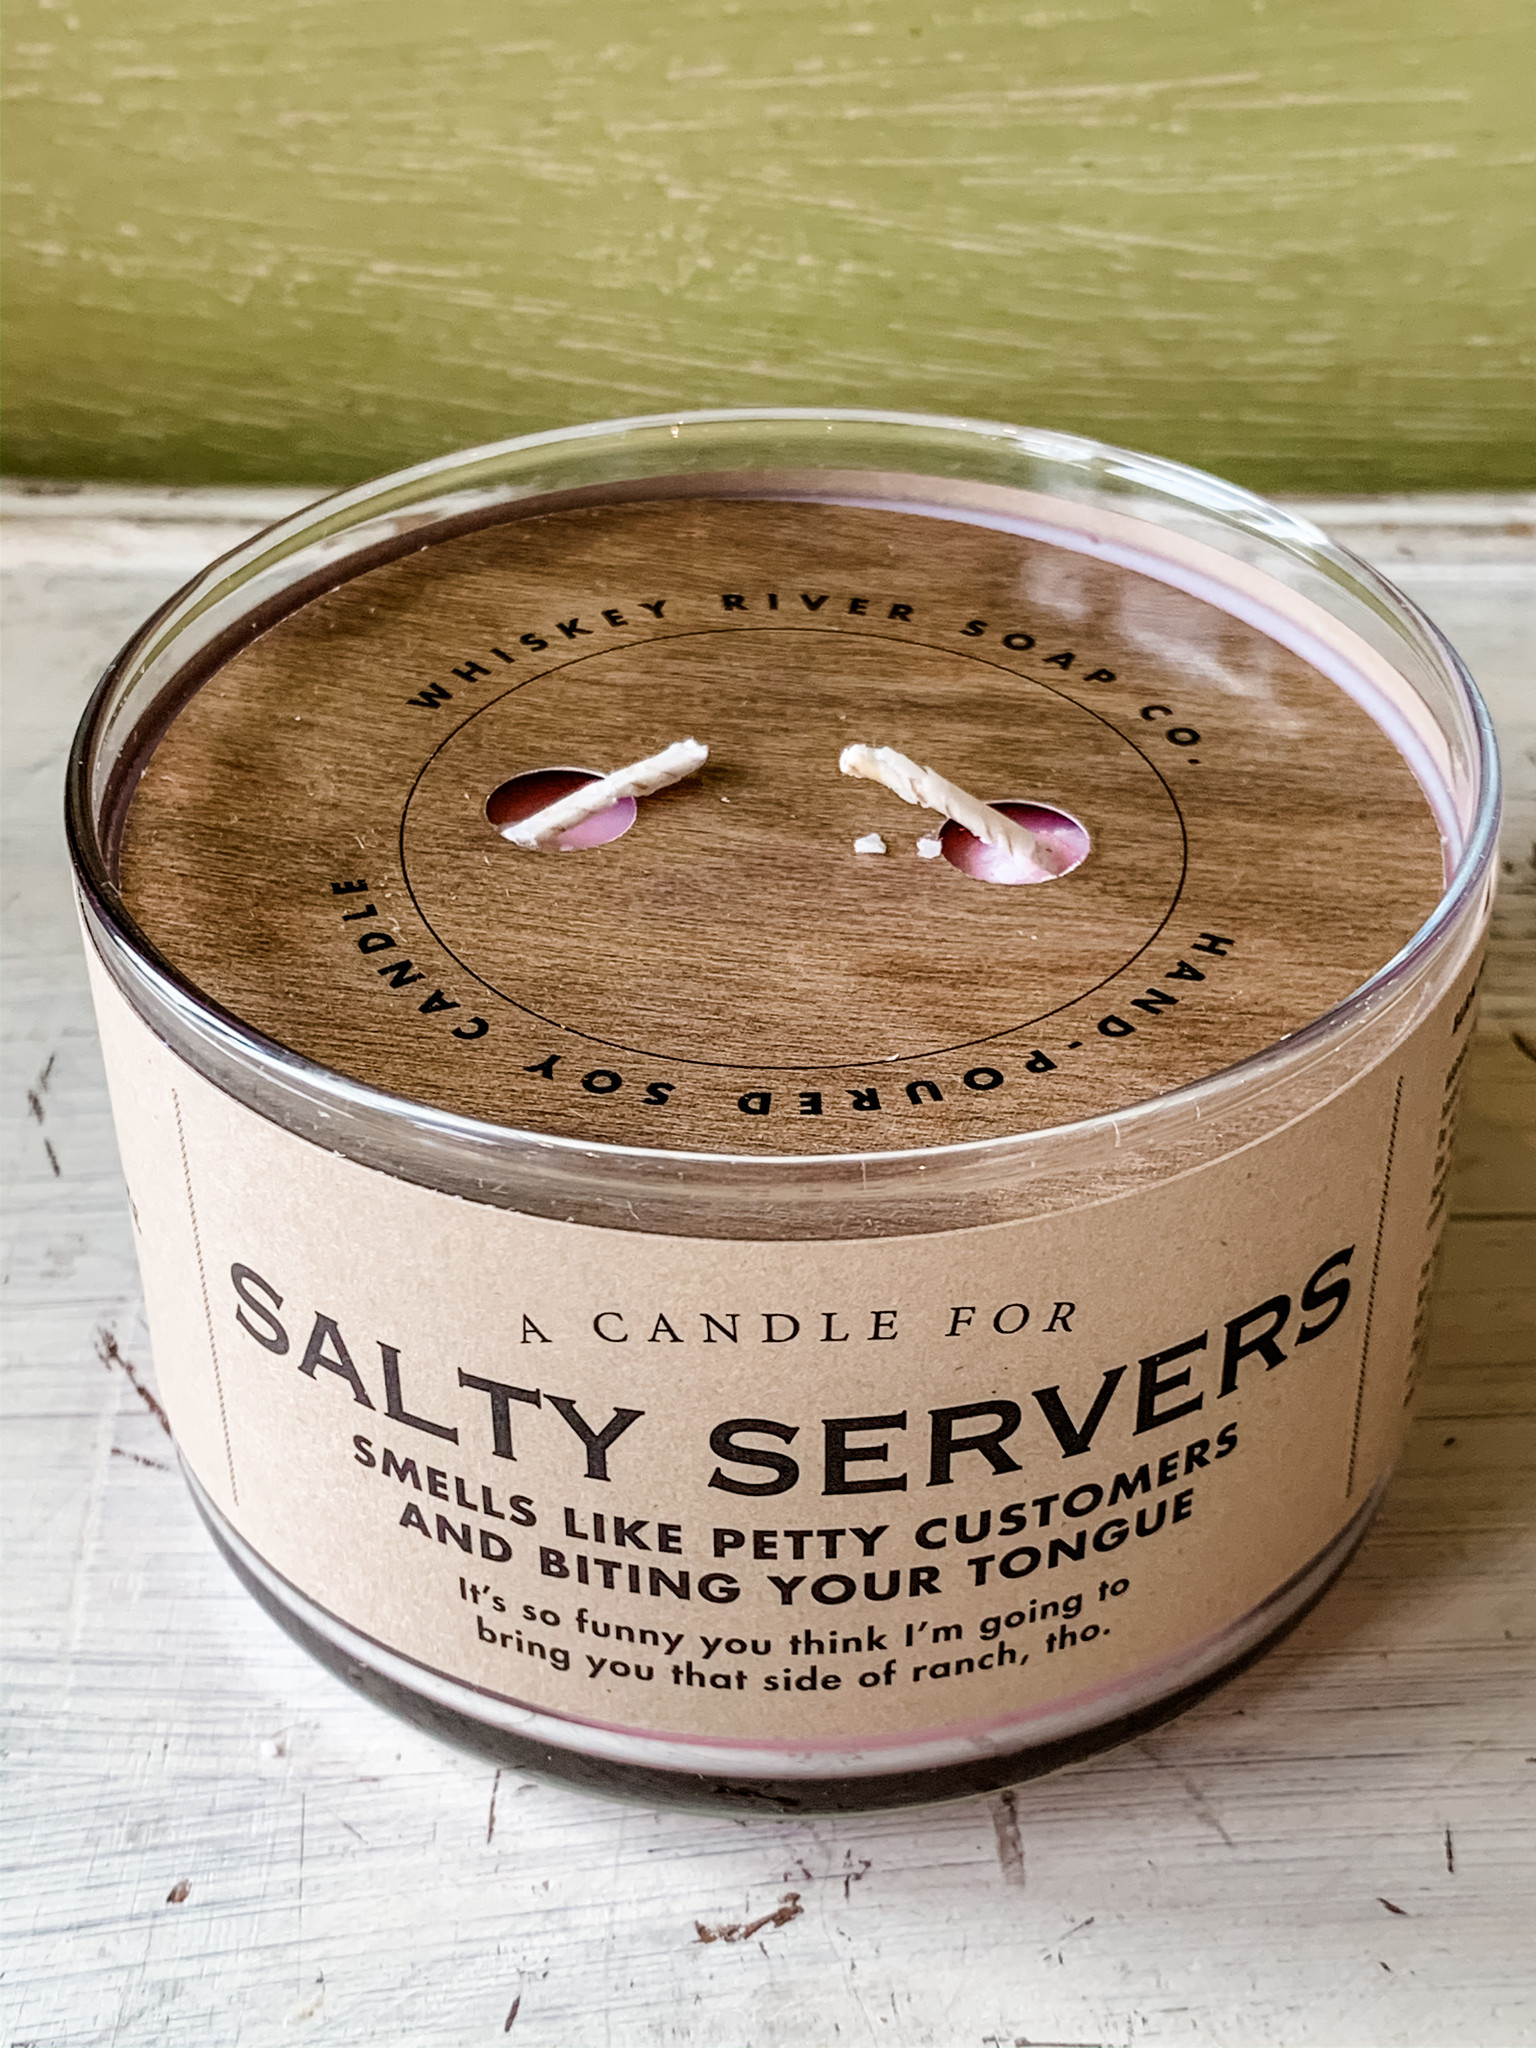 Whiskey River Soap Company Whiskey River Candle Salty Servers